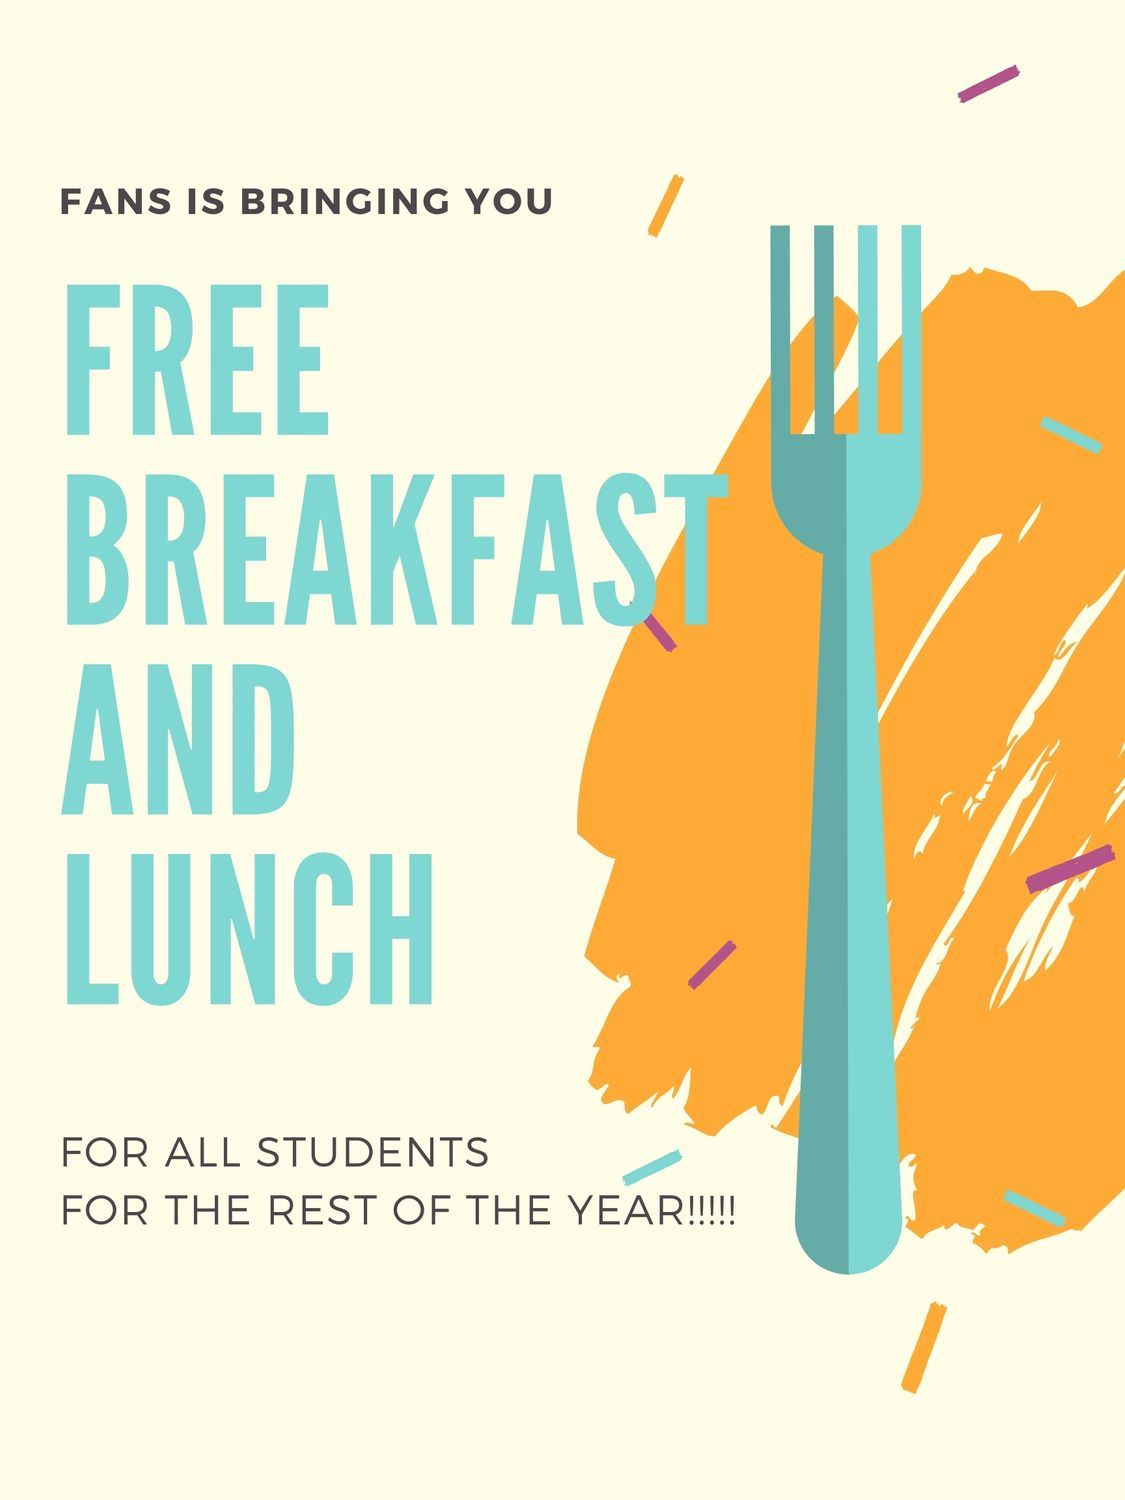 Image of a Fork with Information on Free Food for Students